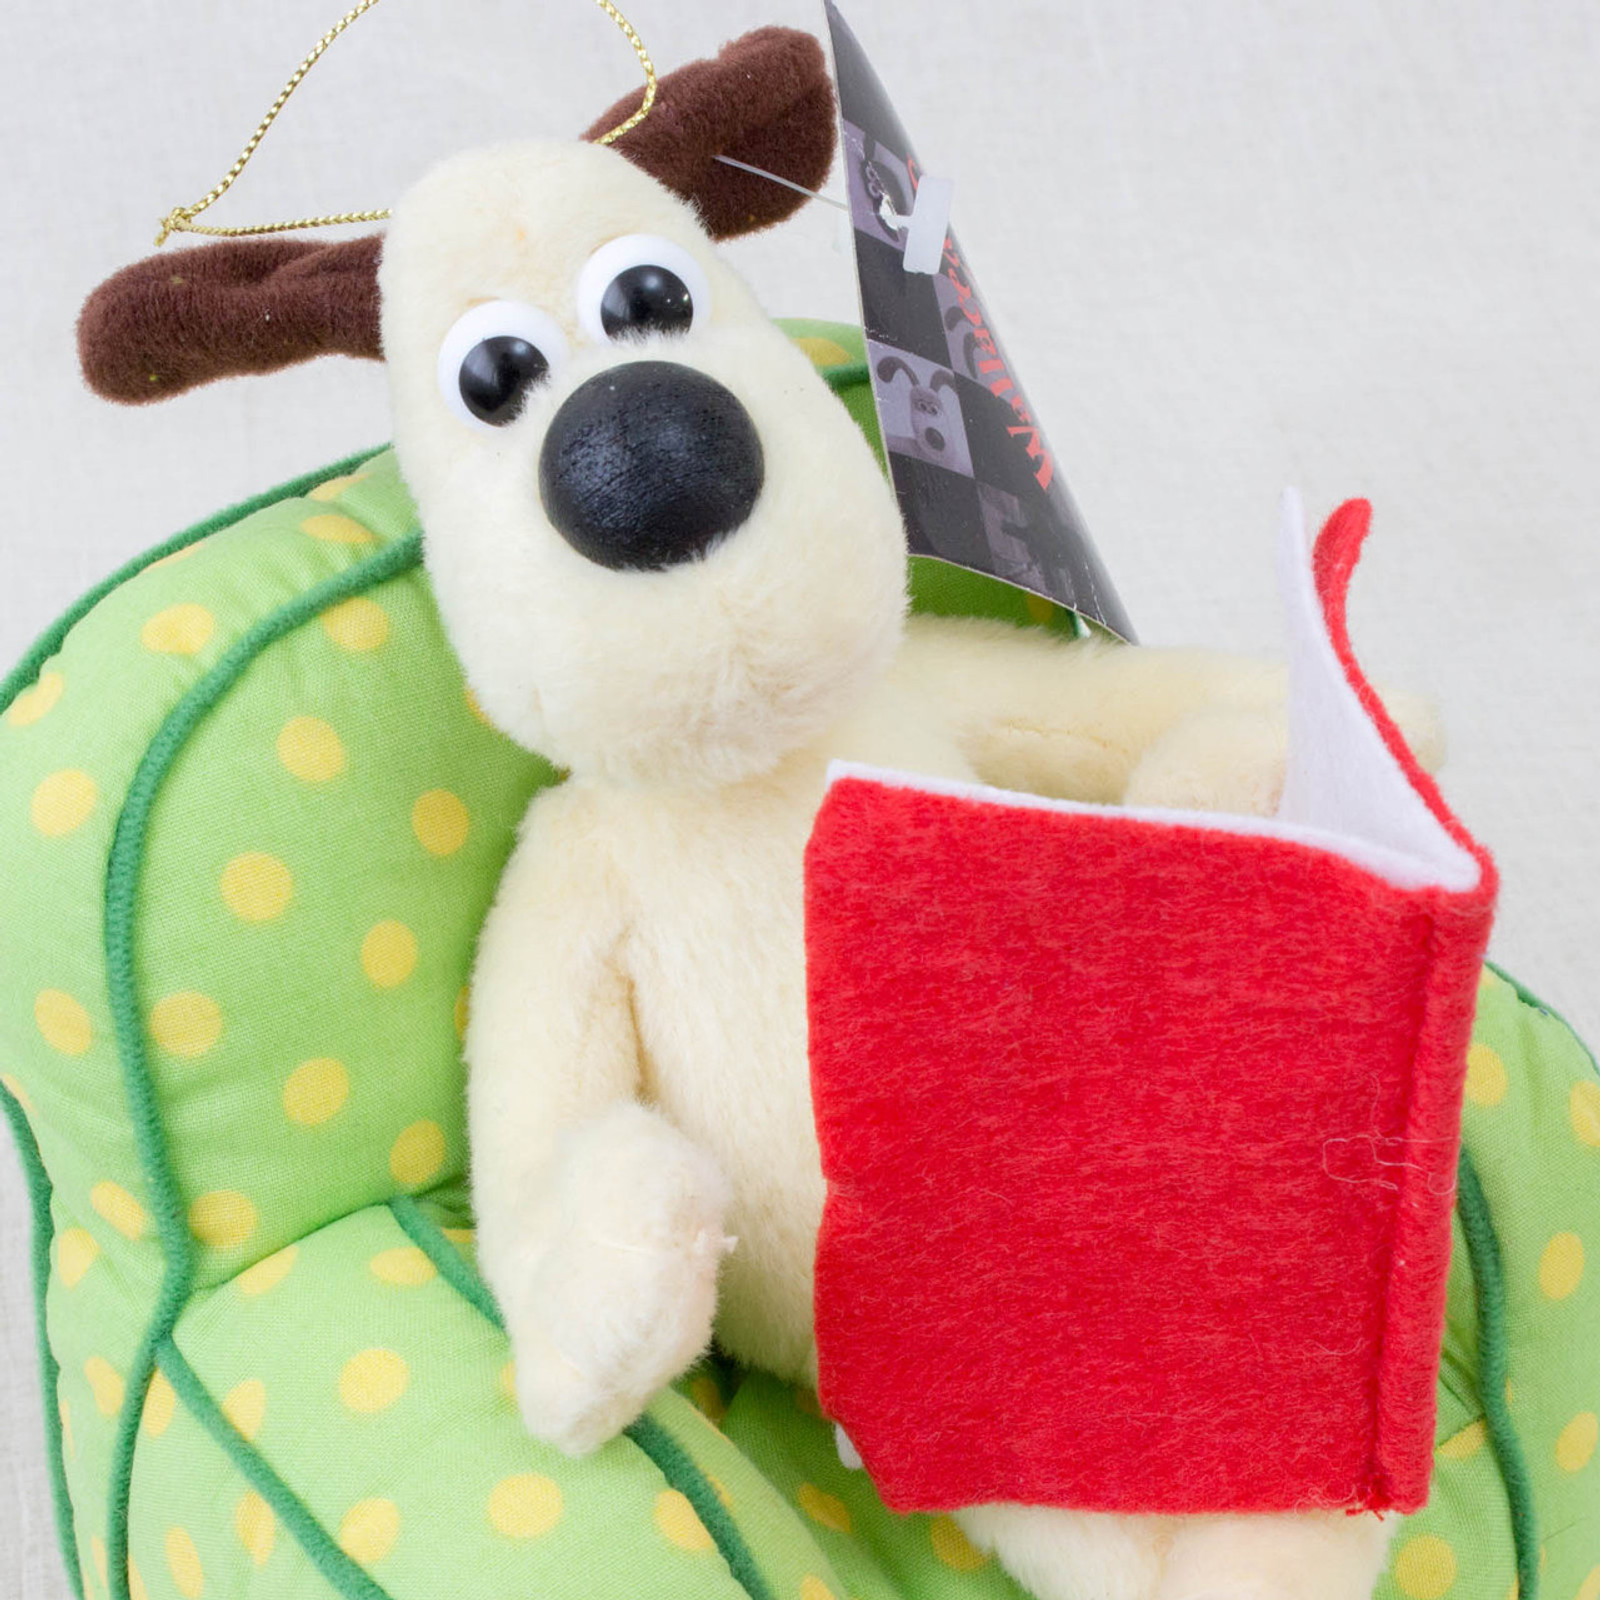 RARE! Wallace & Gromit GROMIT reading book on Sofa Plush Doll AArdman ANIME